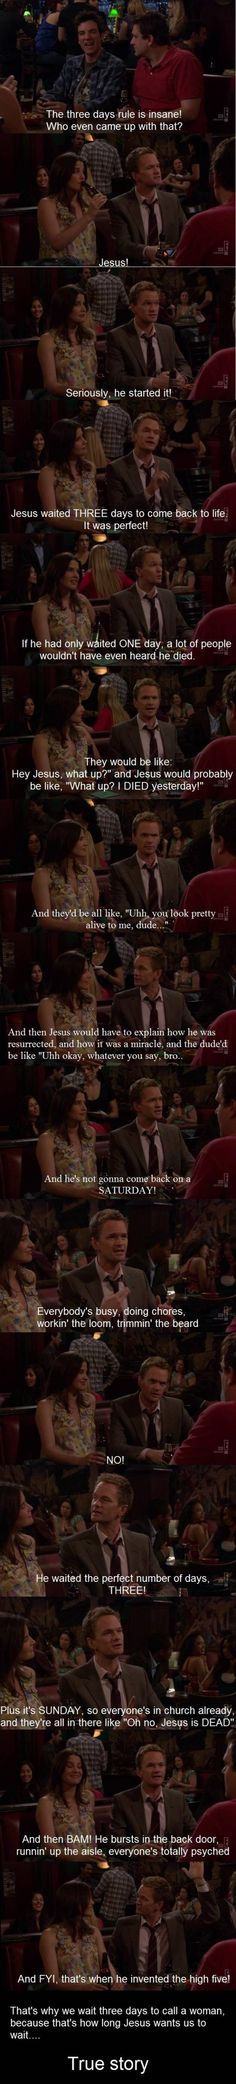 The amazing Neil Patrick Harris sense of logic... One of a kind.